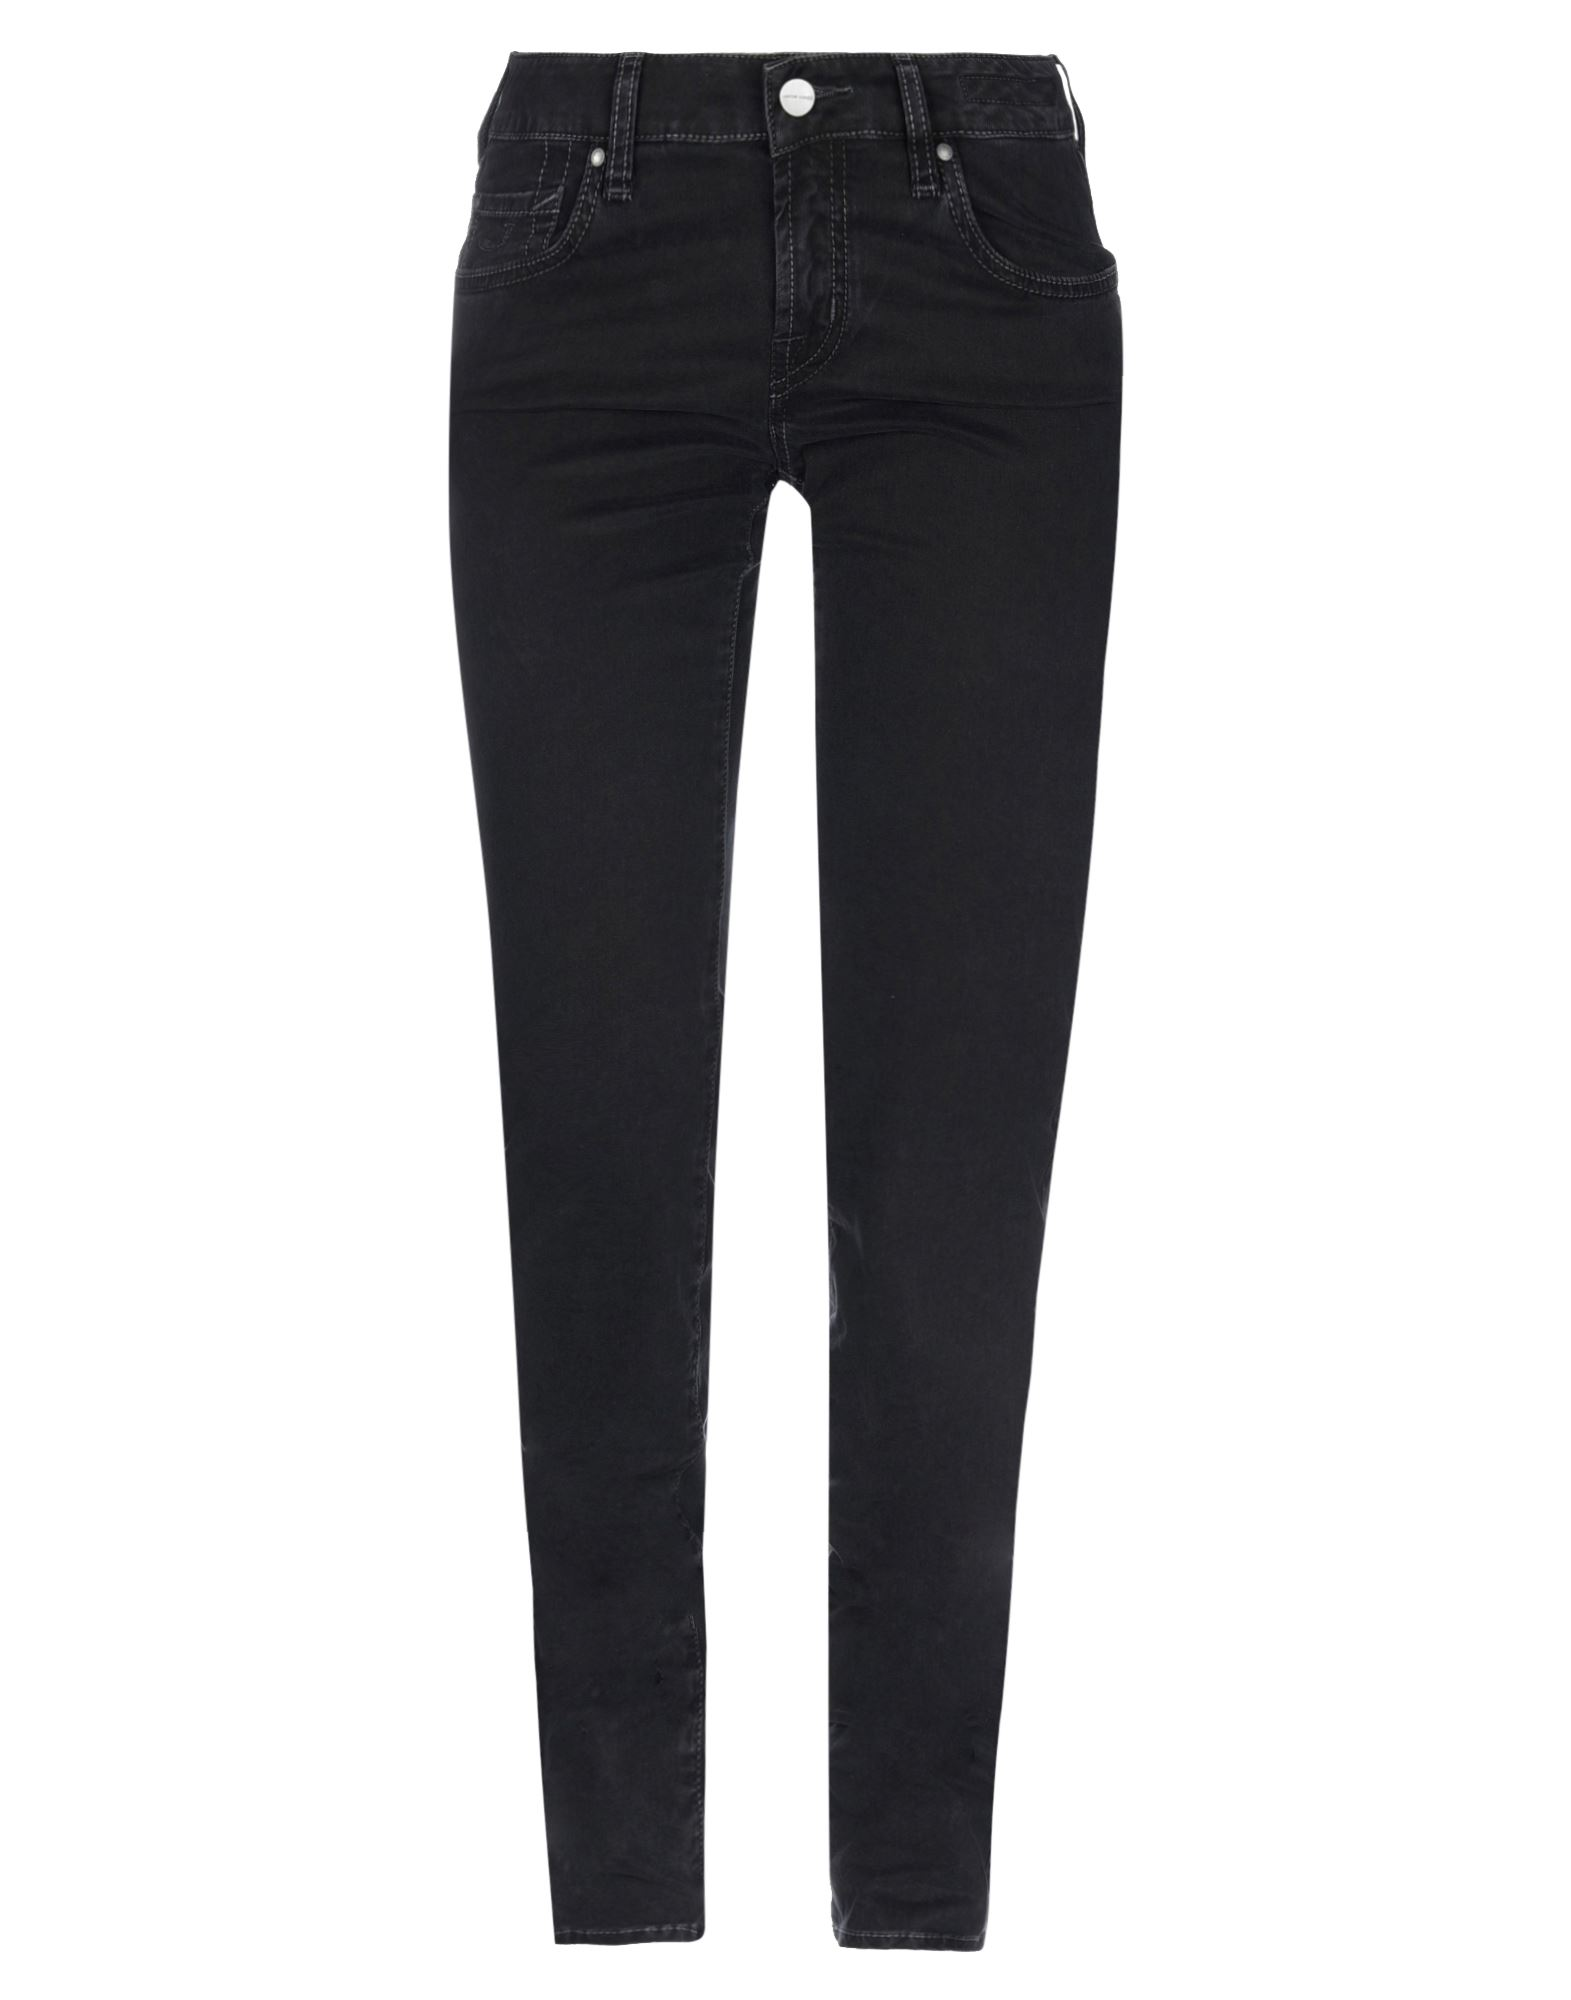 JACOB COHЁN Denim pants - Item 42822437